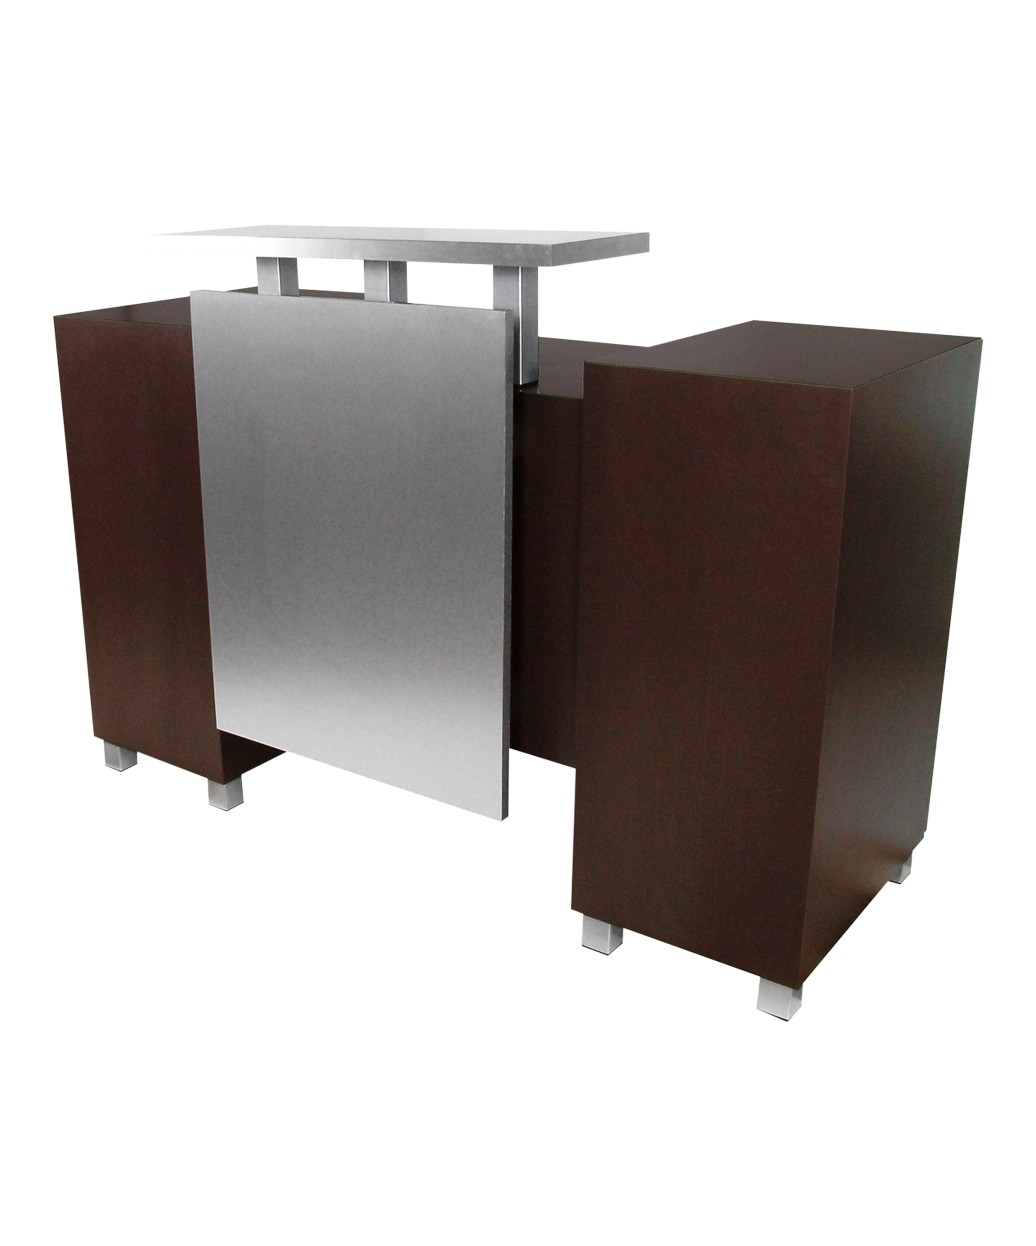 930-60 Amati Amico Reception Desk